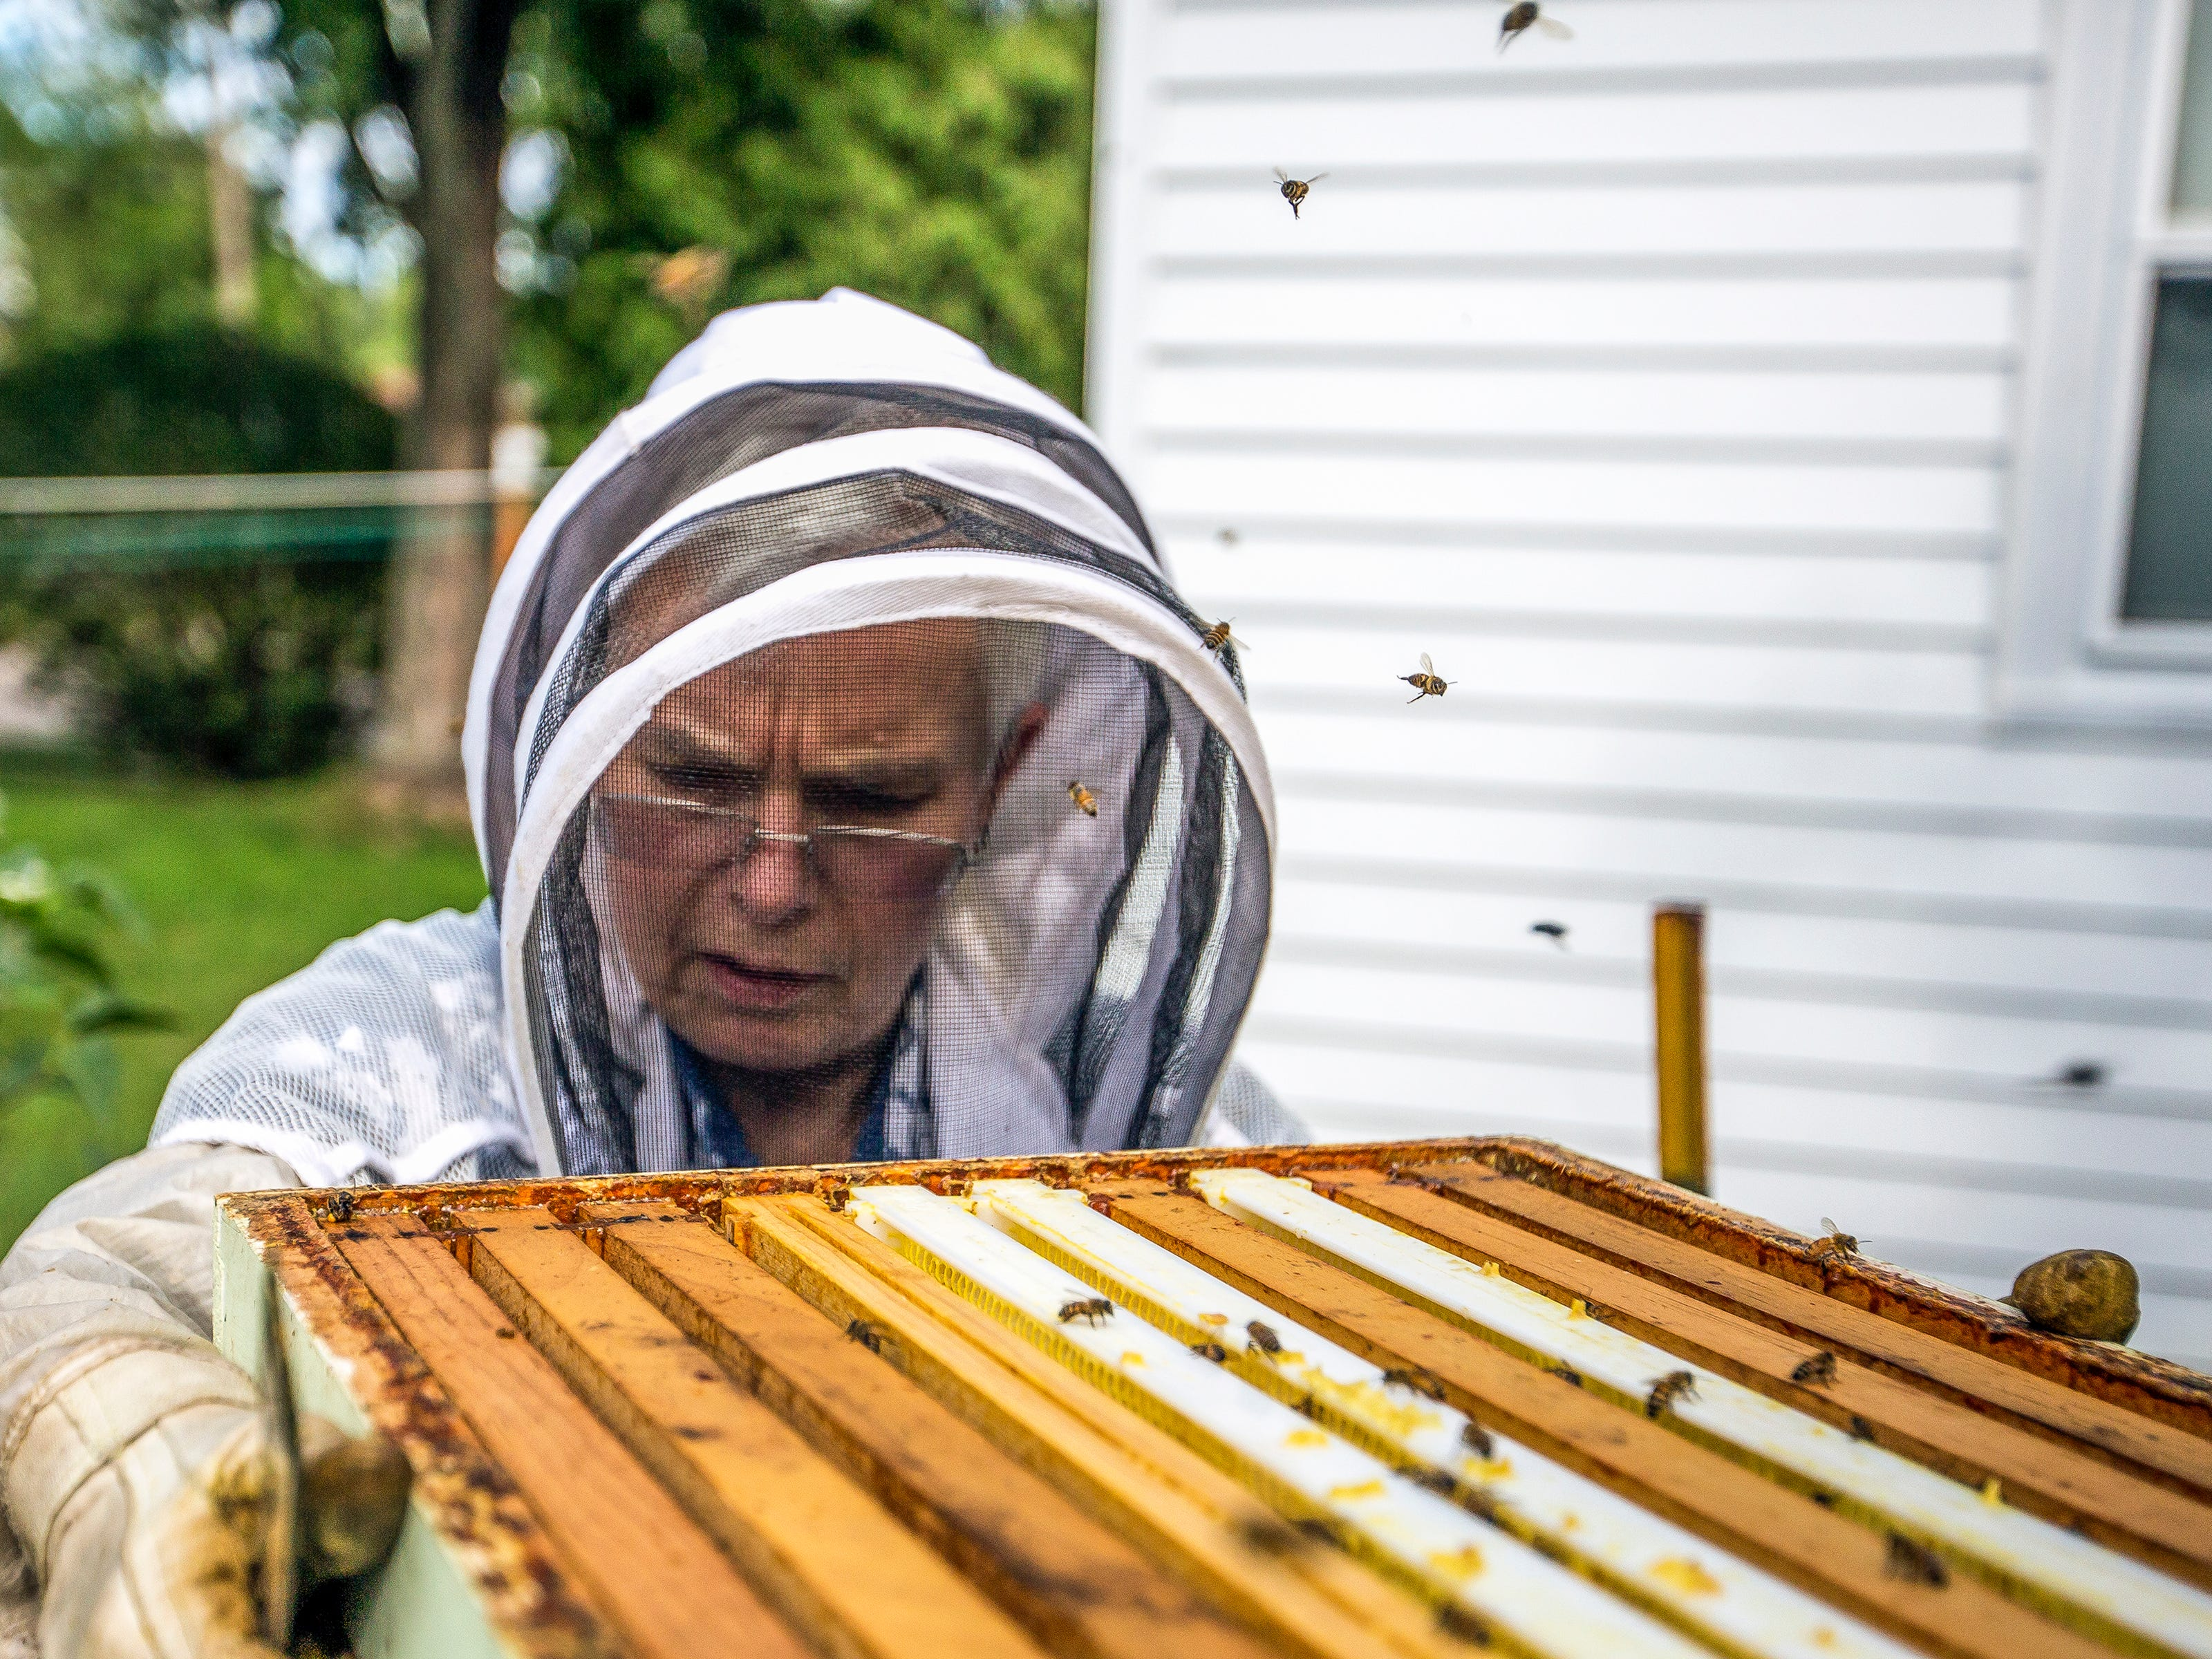 Joy Berg checks on the health of a hive that is among those she and her sister Wendy Dolan keep in the backyard of Dolan's home in Stevens Point, Wis., August 29, 2018.